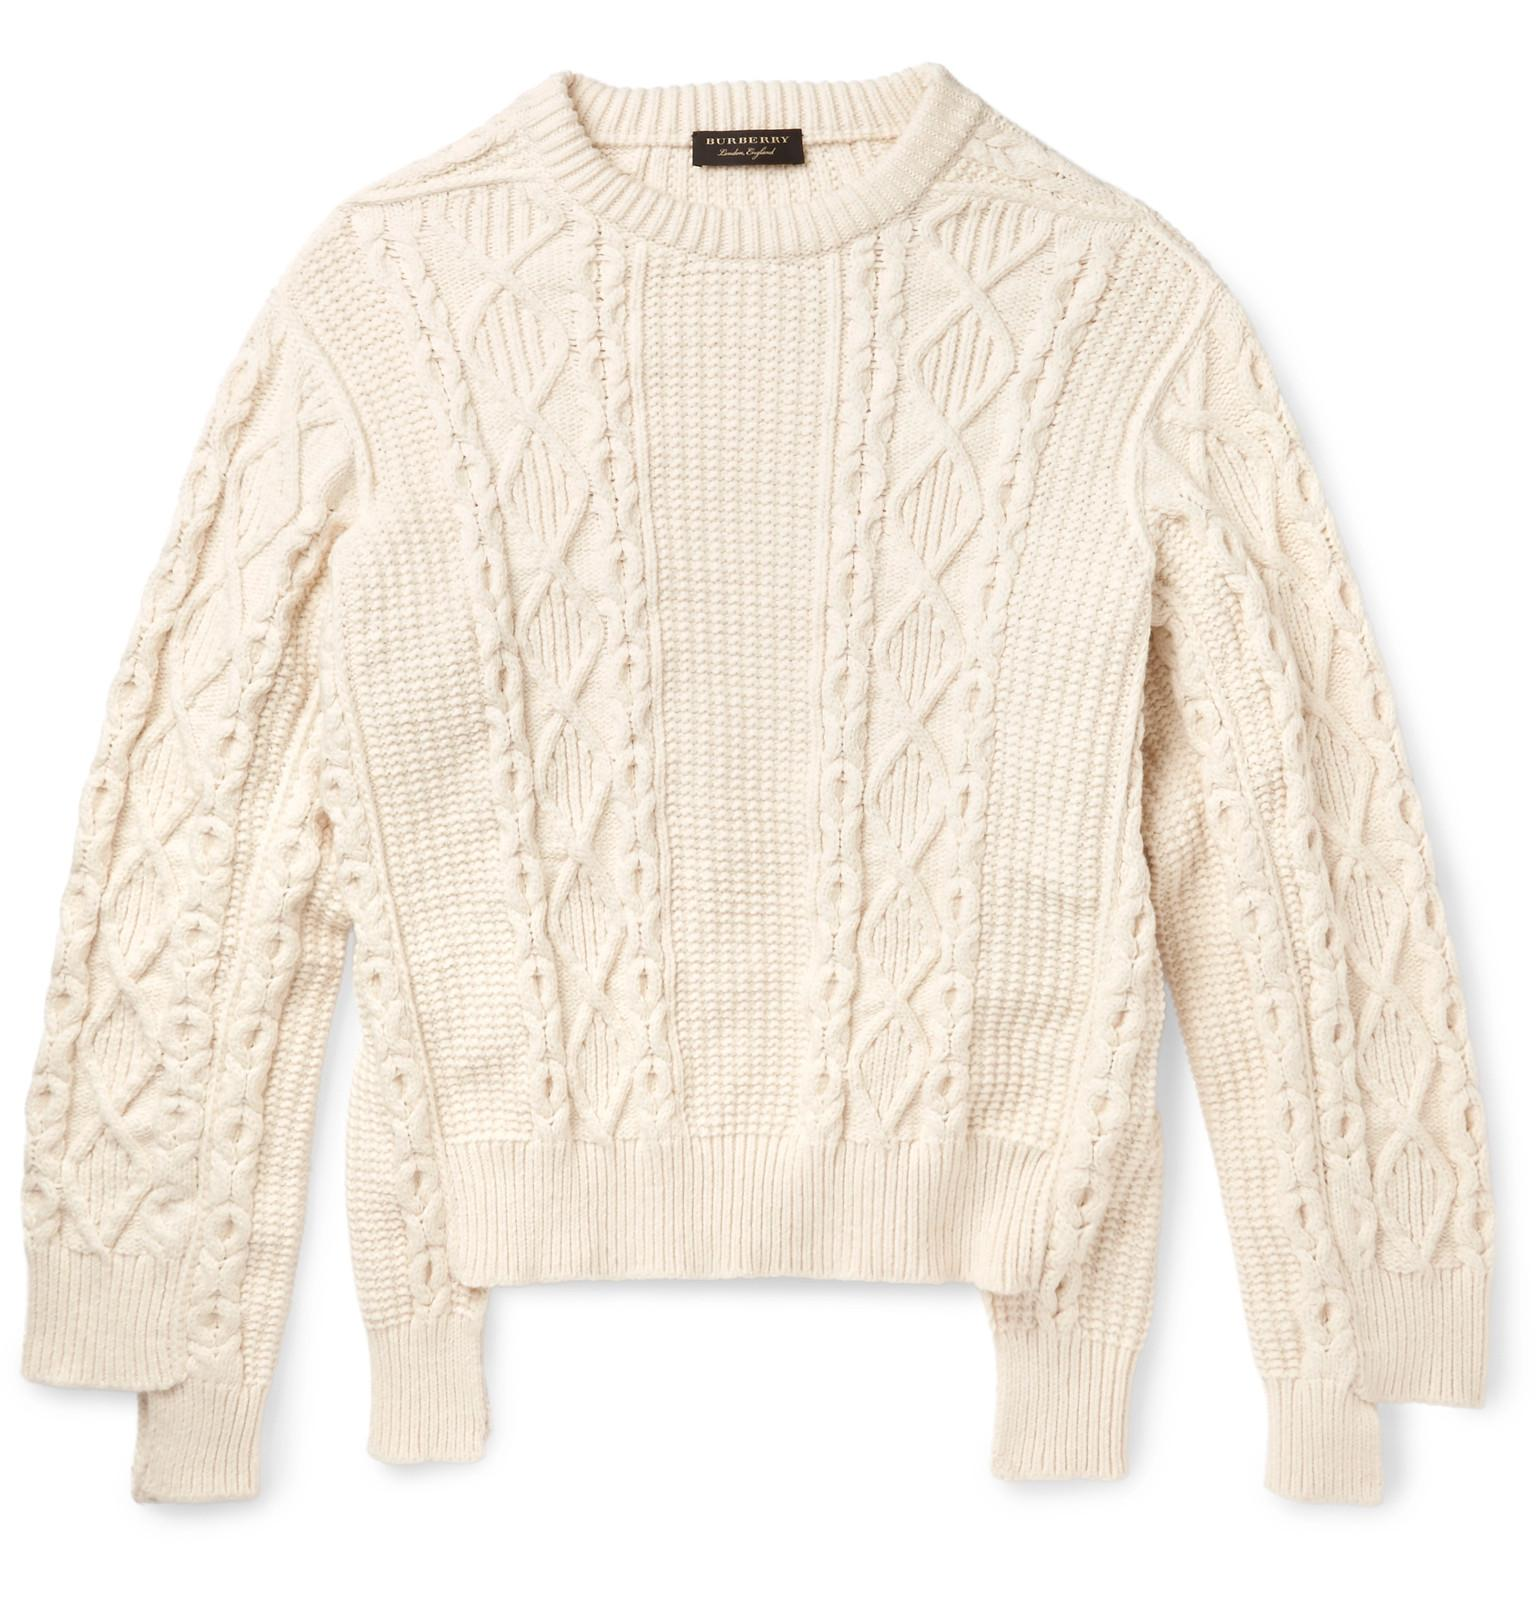 Burberry Runway Oversized Cable-knit Cotton-blend Sweater in ...